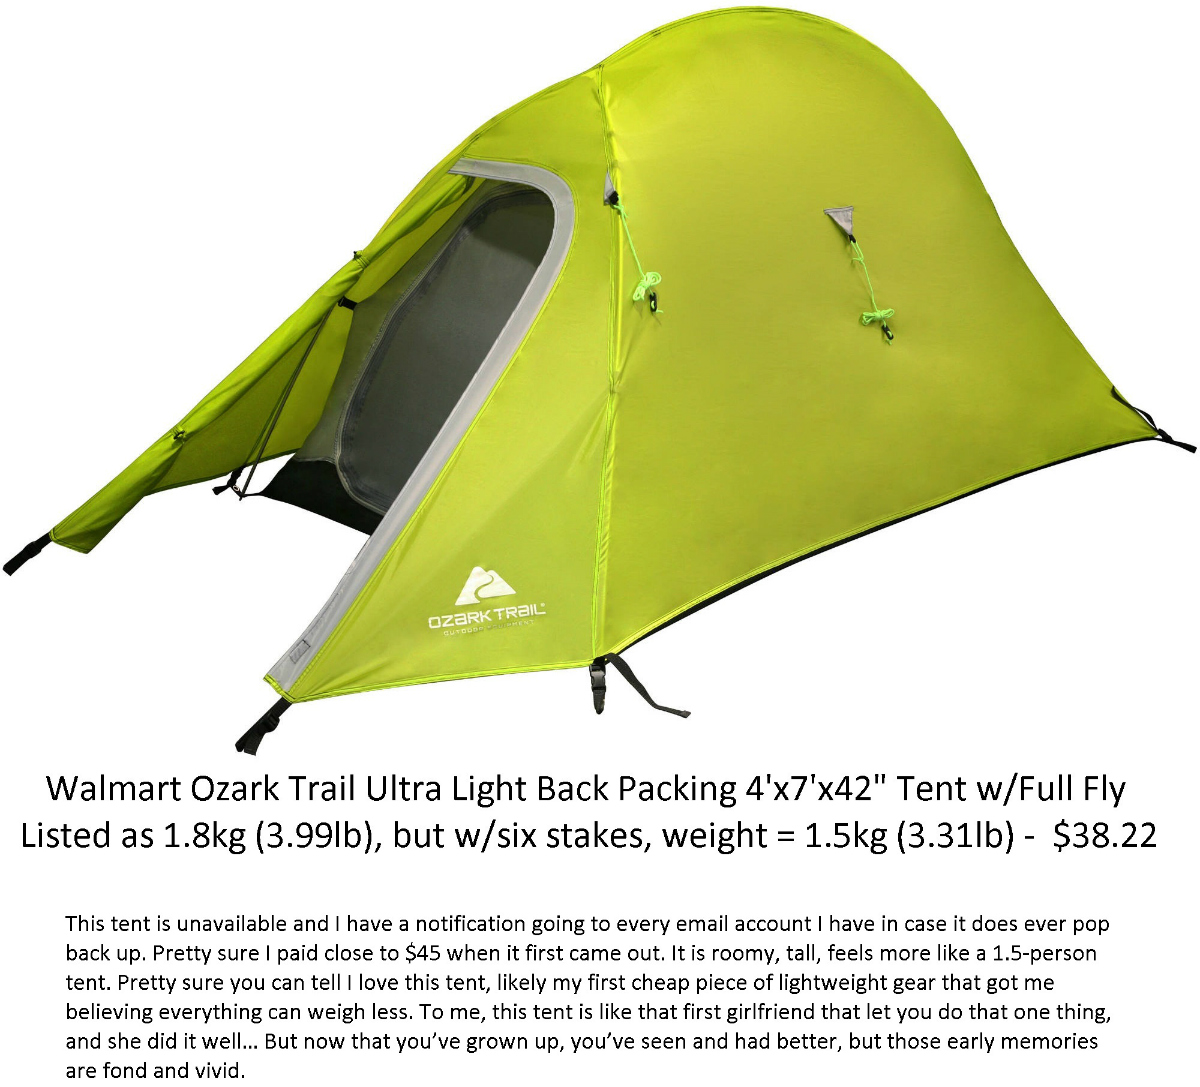 """Walmart Ozark Trail Ultra Light Back Packing 4' x 7' x 42"""" Tent with Full Fly, Sleeping Capacity 1 Person"""